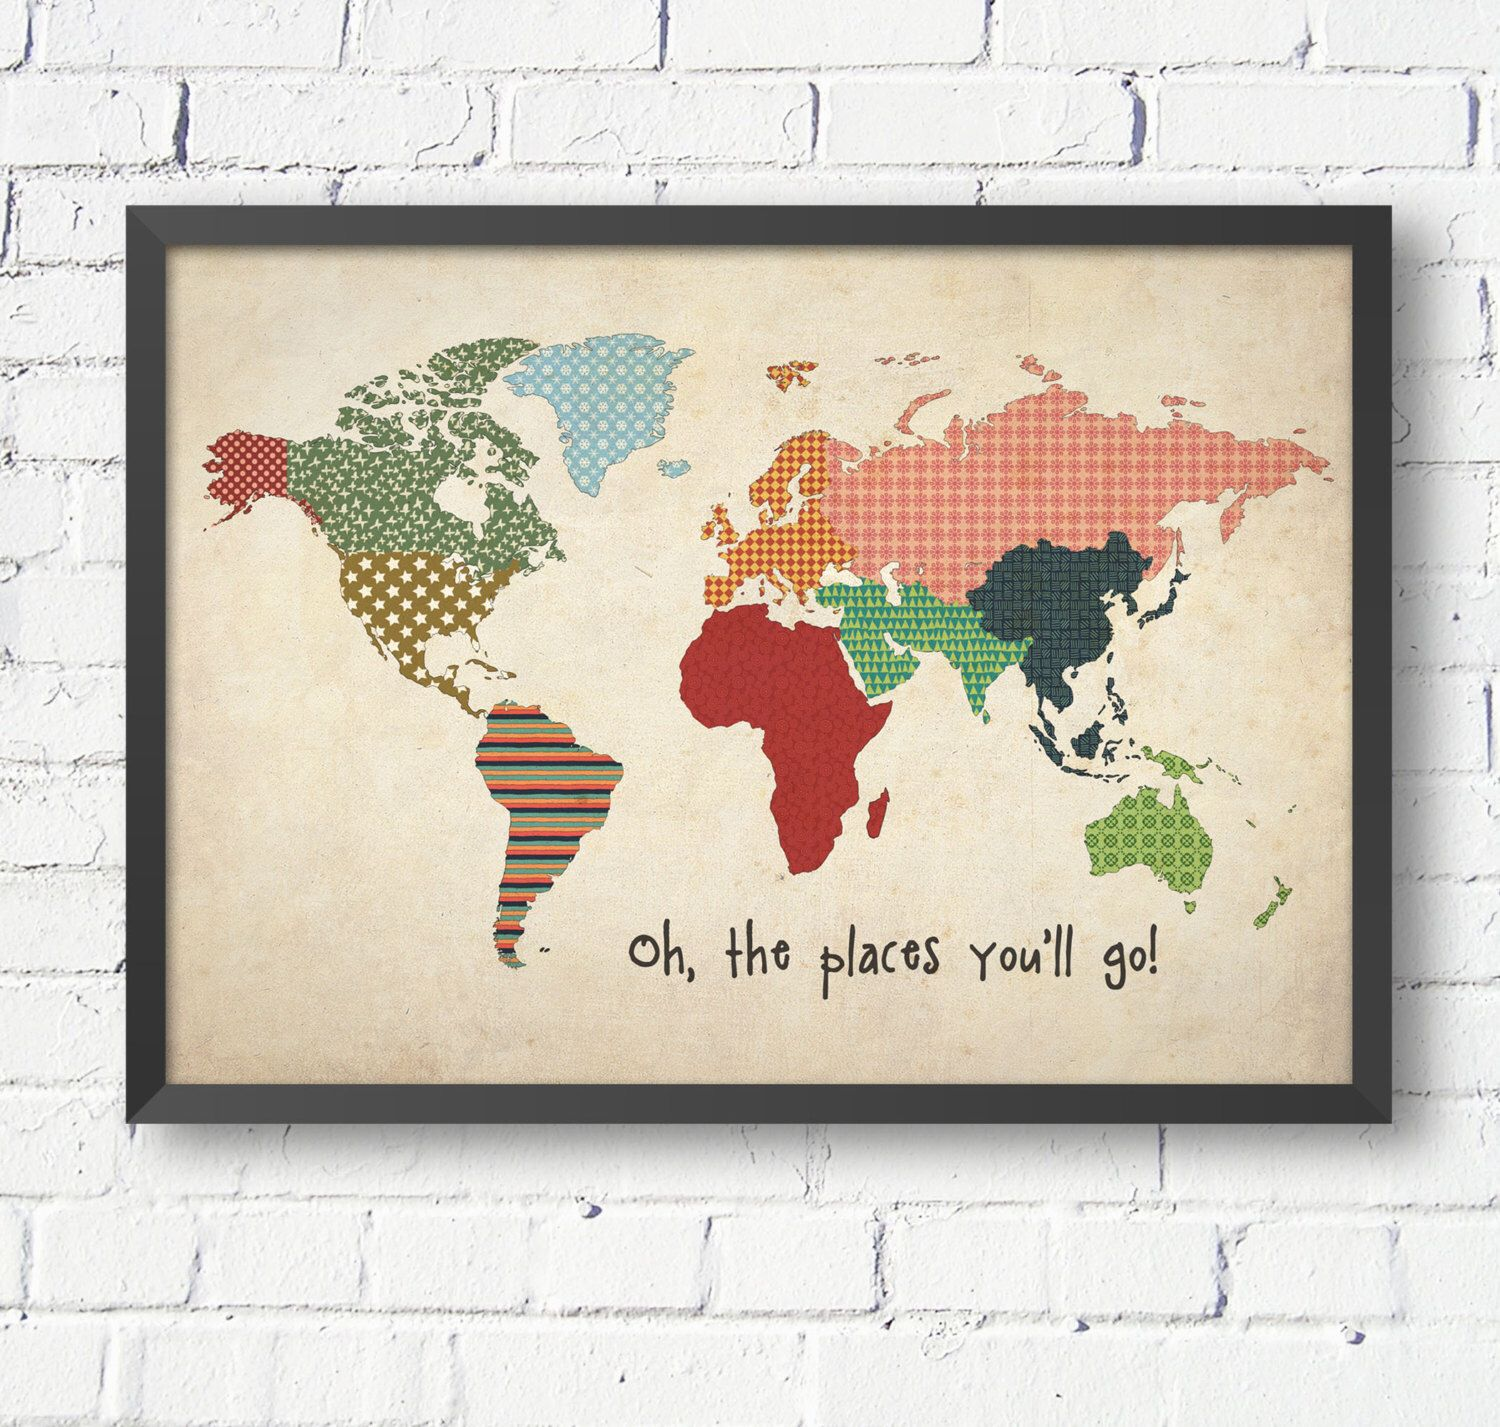 Vintage world map world map poster size a1 a2 a3 a4 world map vintage world map world map poster size a1 a2 a3 a4 world map gumiabroncs Image collections